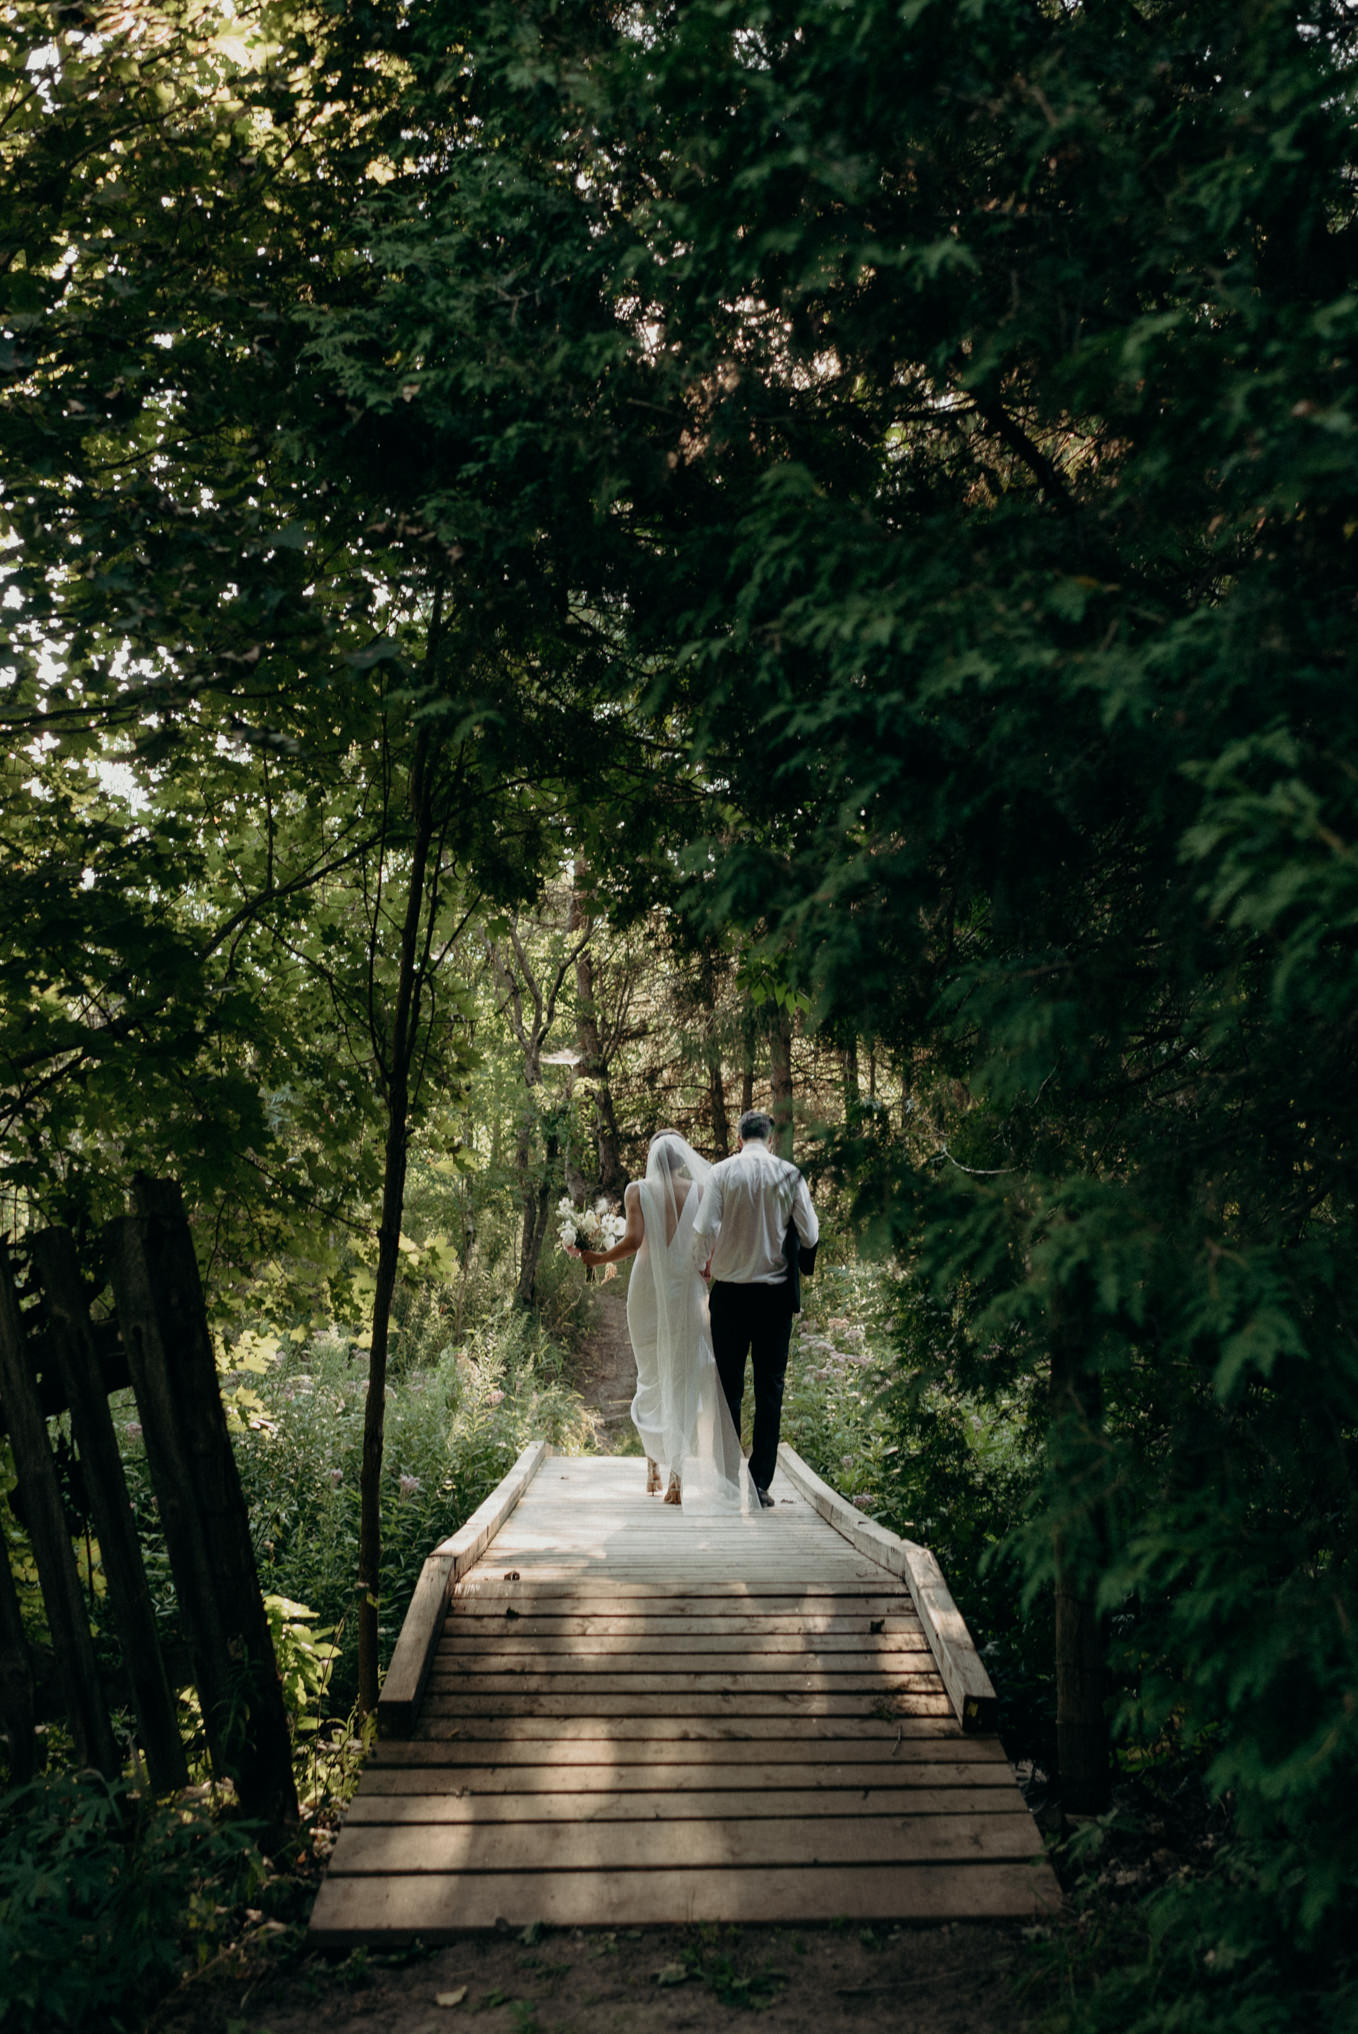 bride and groom walking in nature forest on wedding day